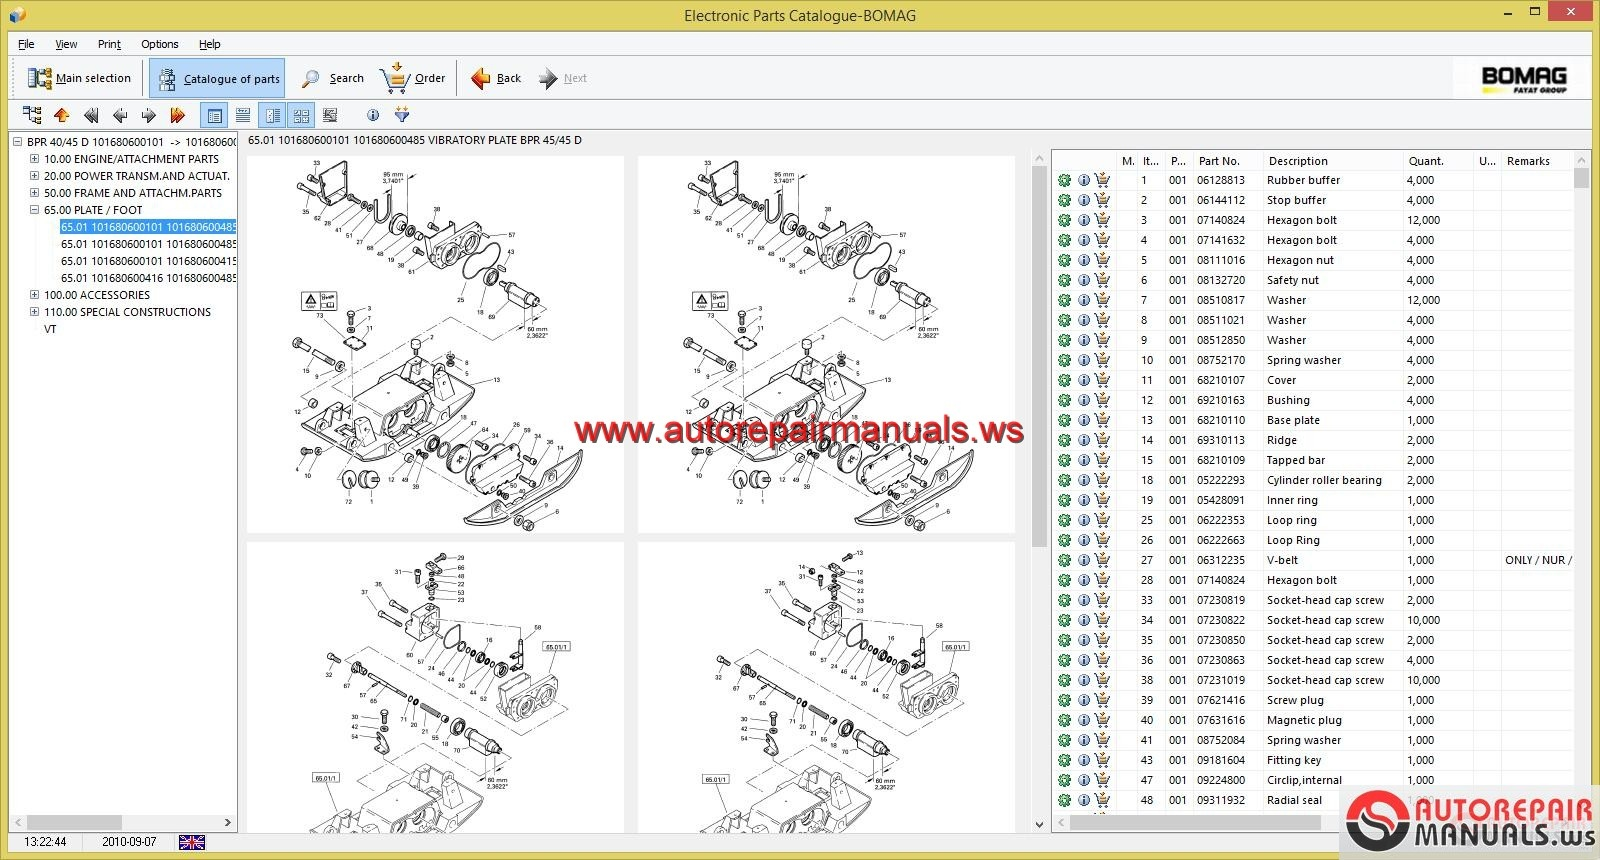 wiring diagram for 2011 polaris ranger 800 xp 2011 polaris